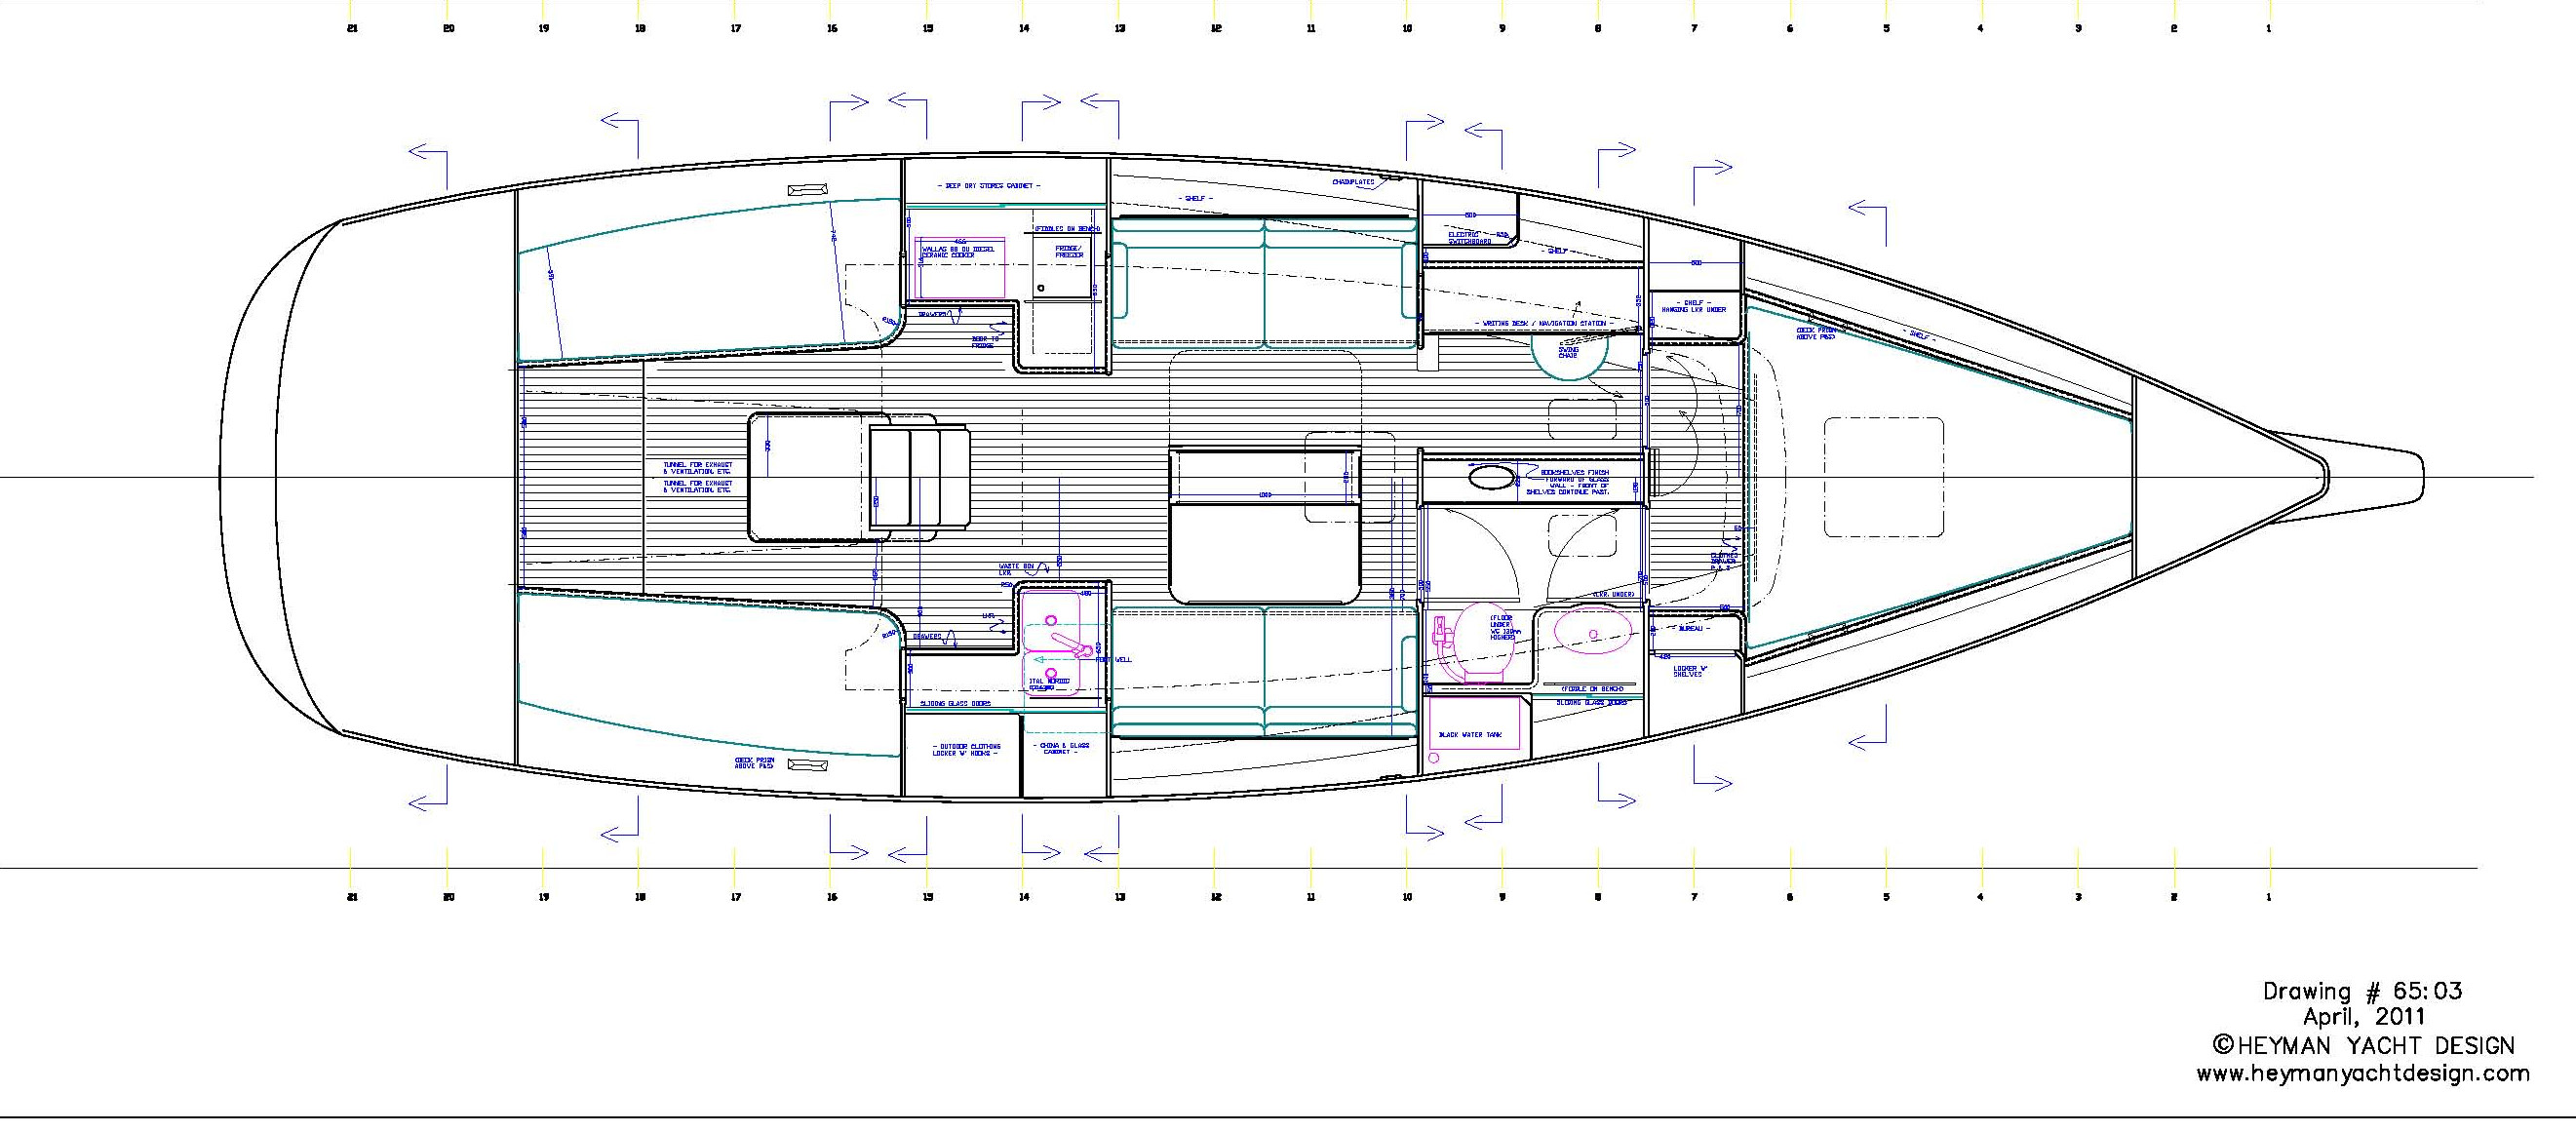 Celeste 36 interior layout